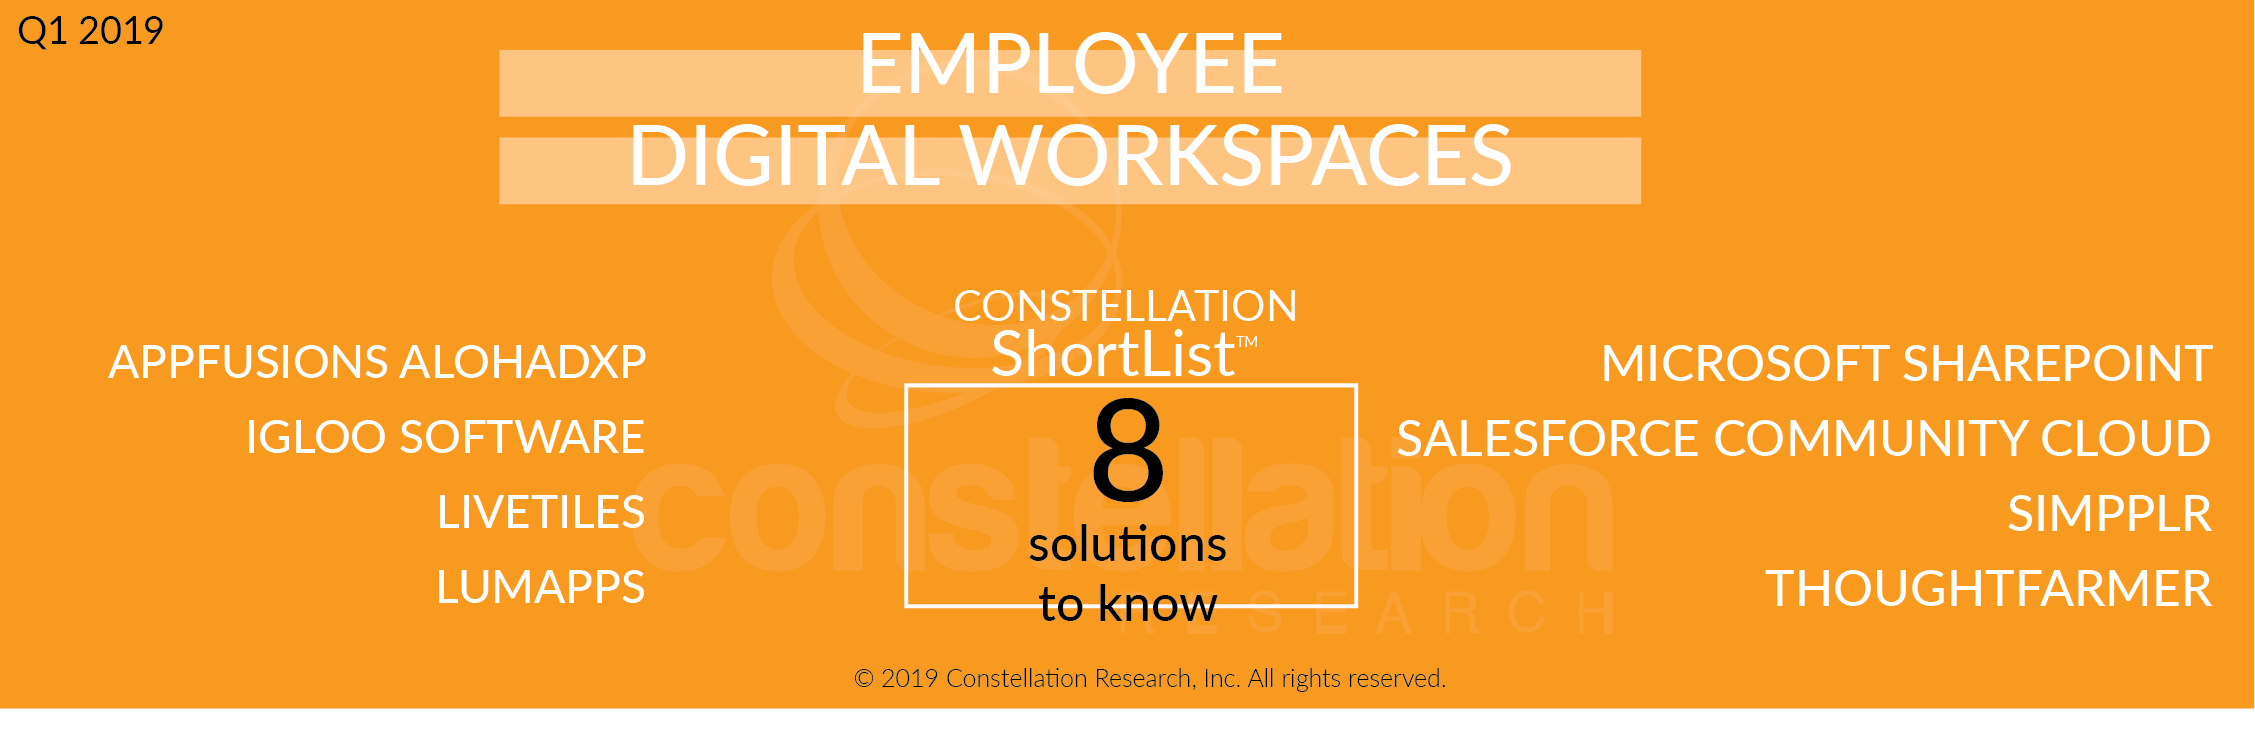 Employee Digital Workspaces